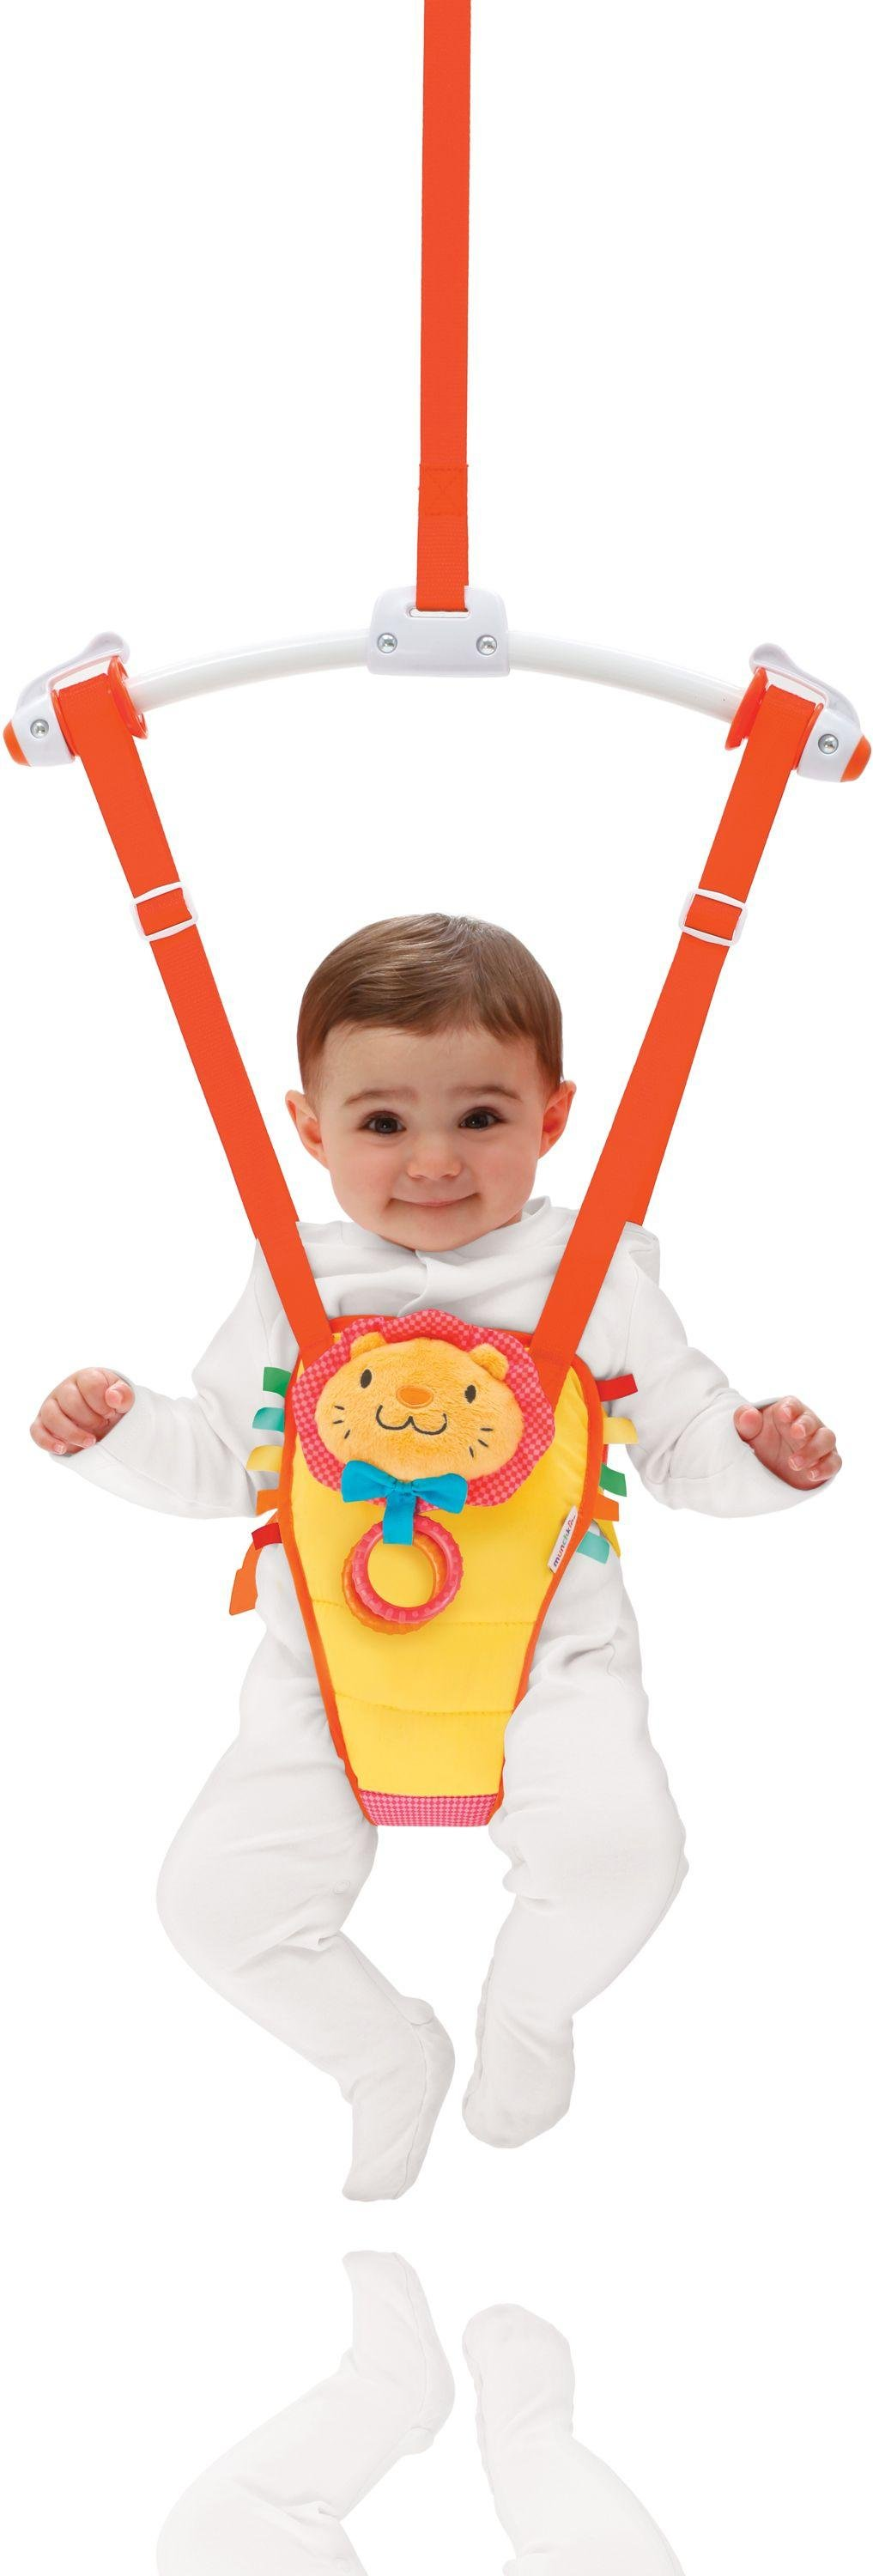 Munchkin Bounce and Play Bouncer.